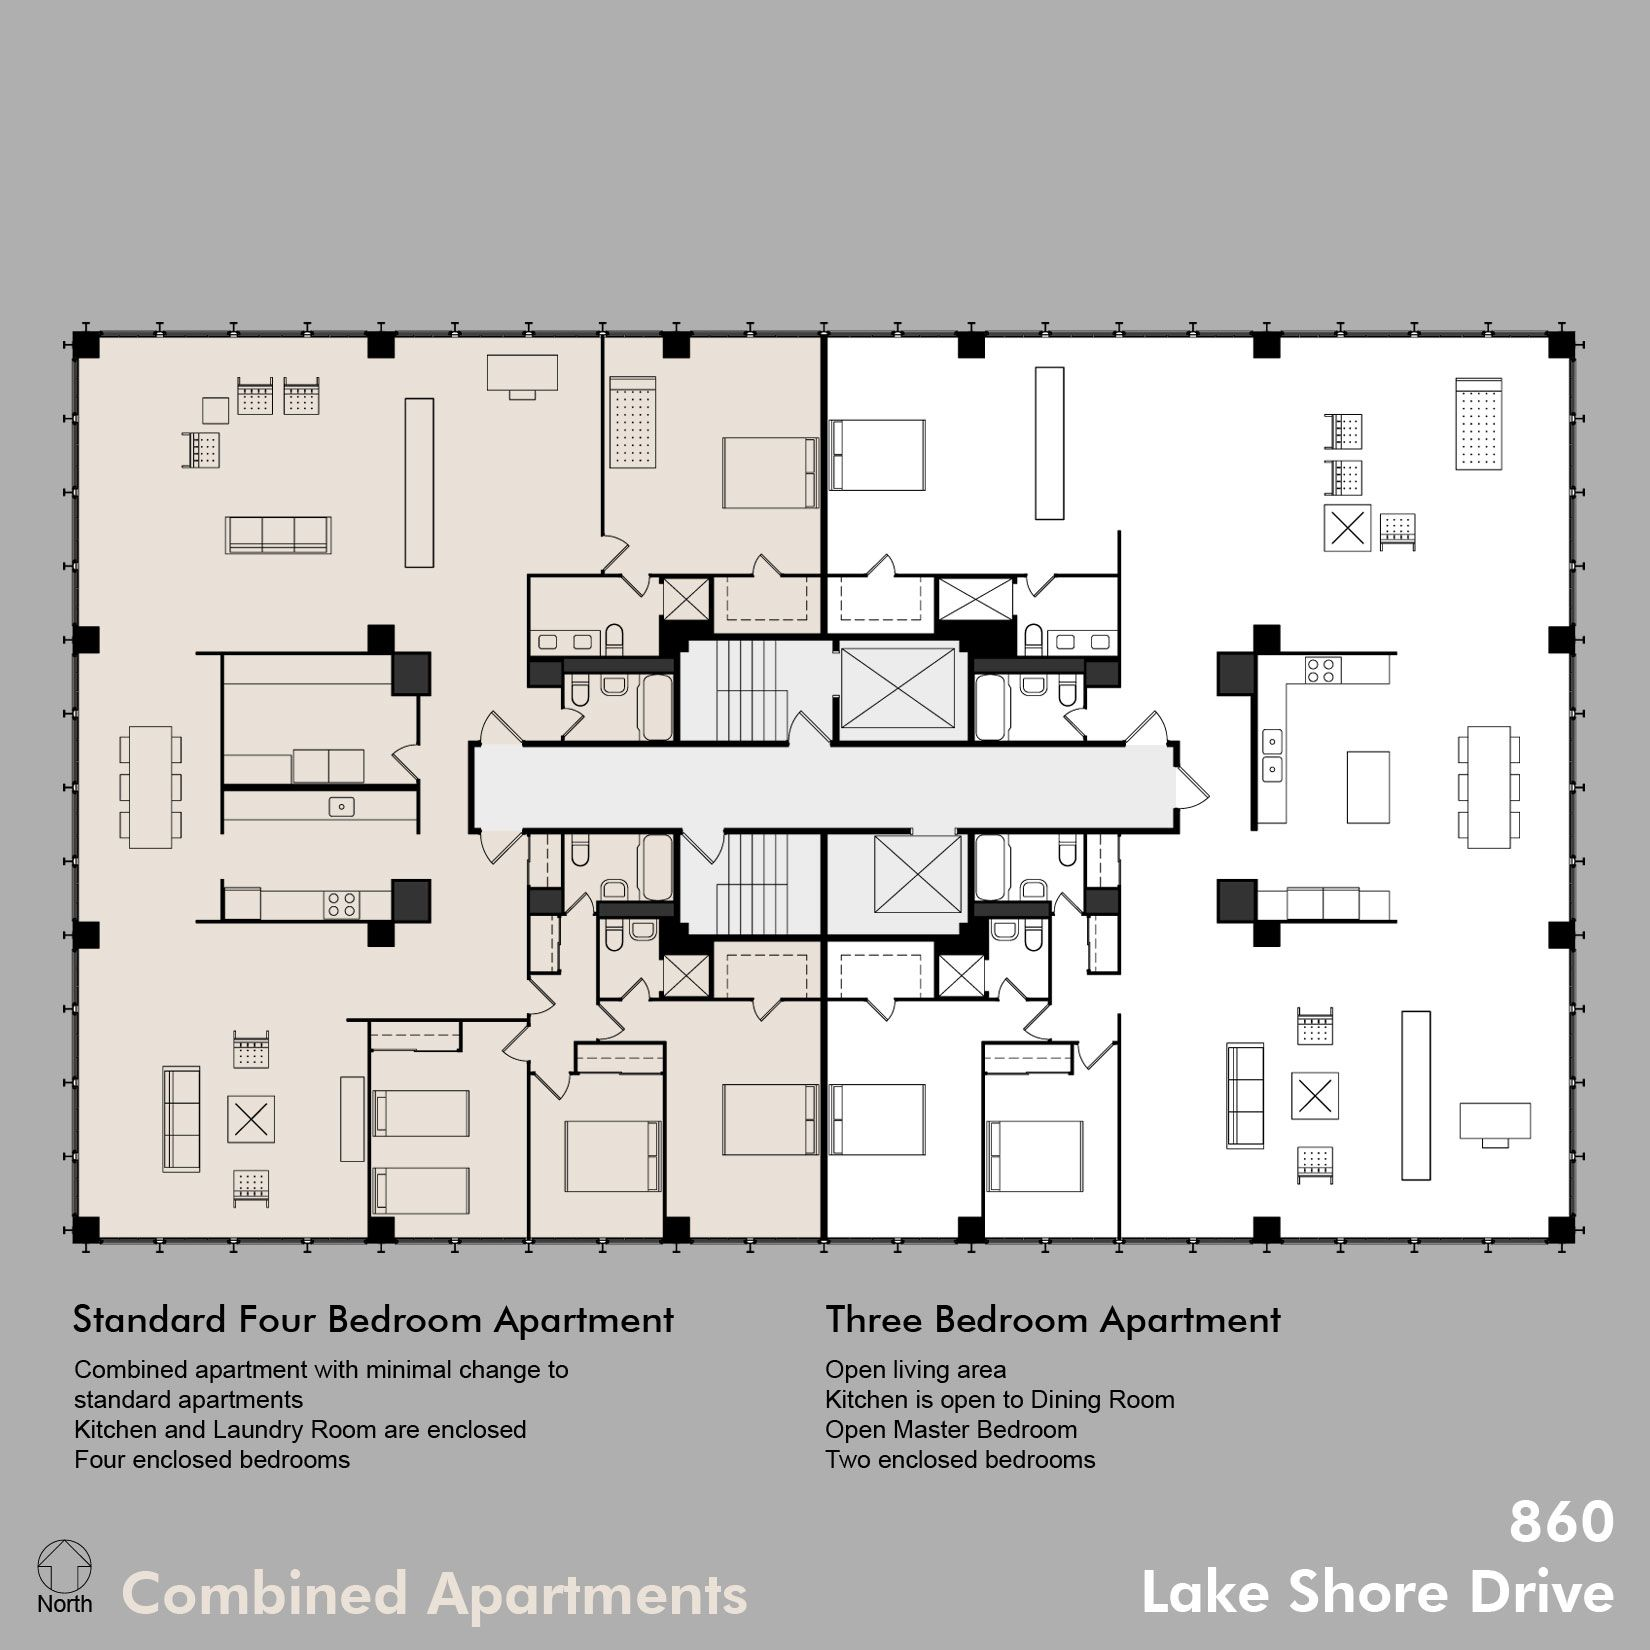 Apartment Building Architectural Plans 880 lake shore drive | architecture - plans: resi | pinterest